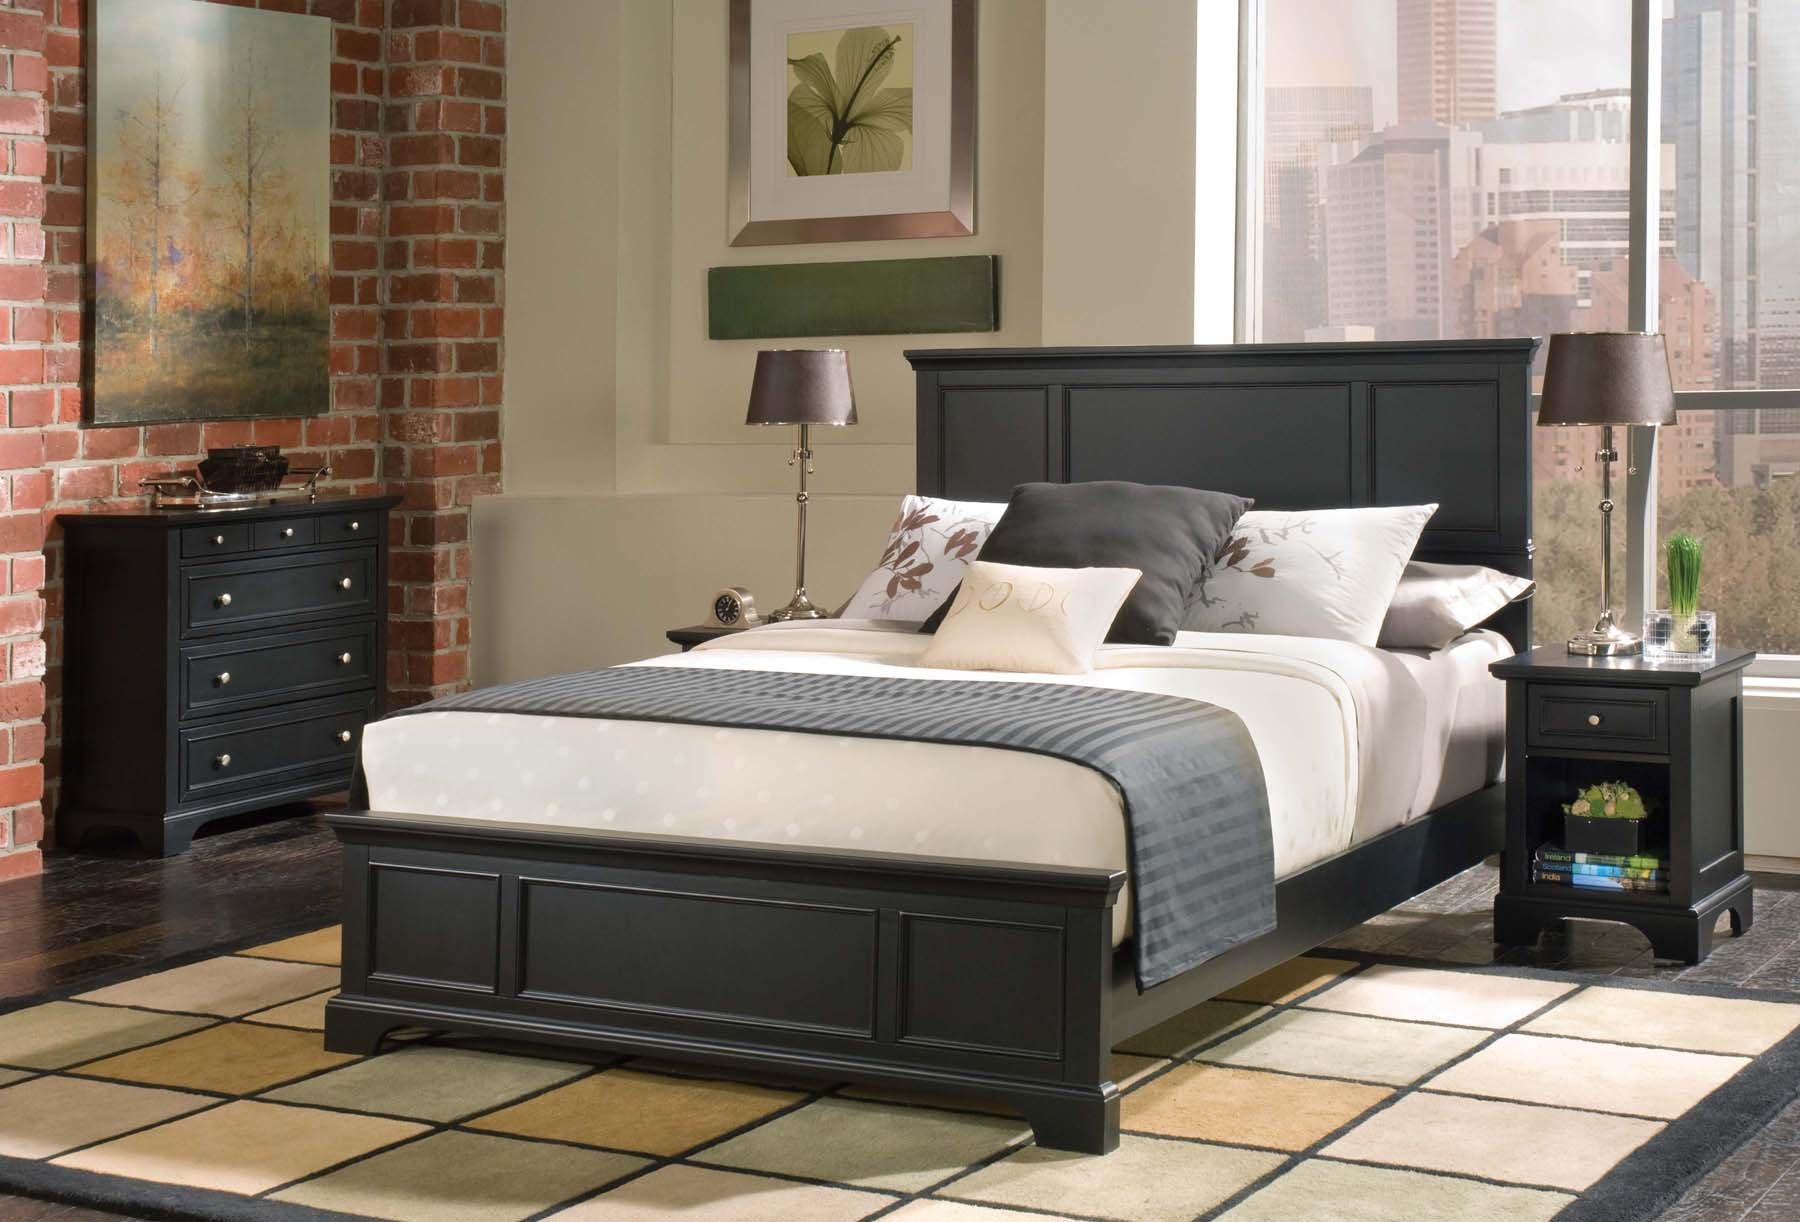 Bedford Black Queen Bed, Nightstand & Chest & Home Styles by Home Styles